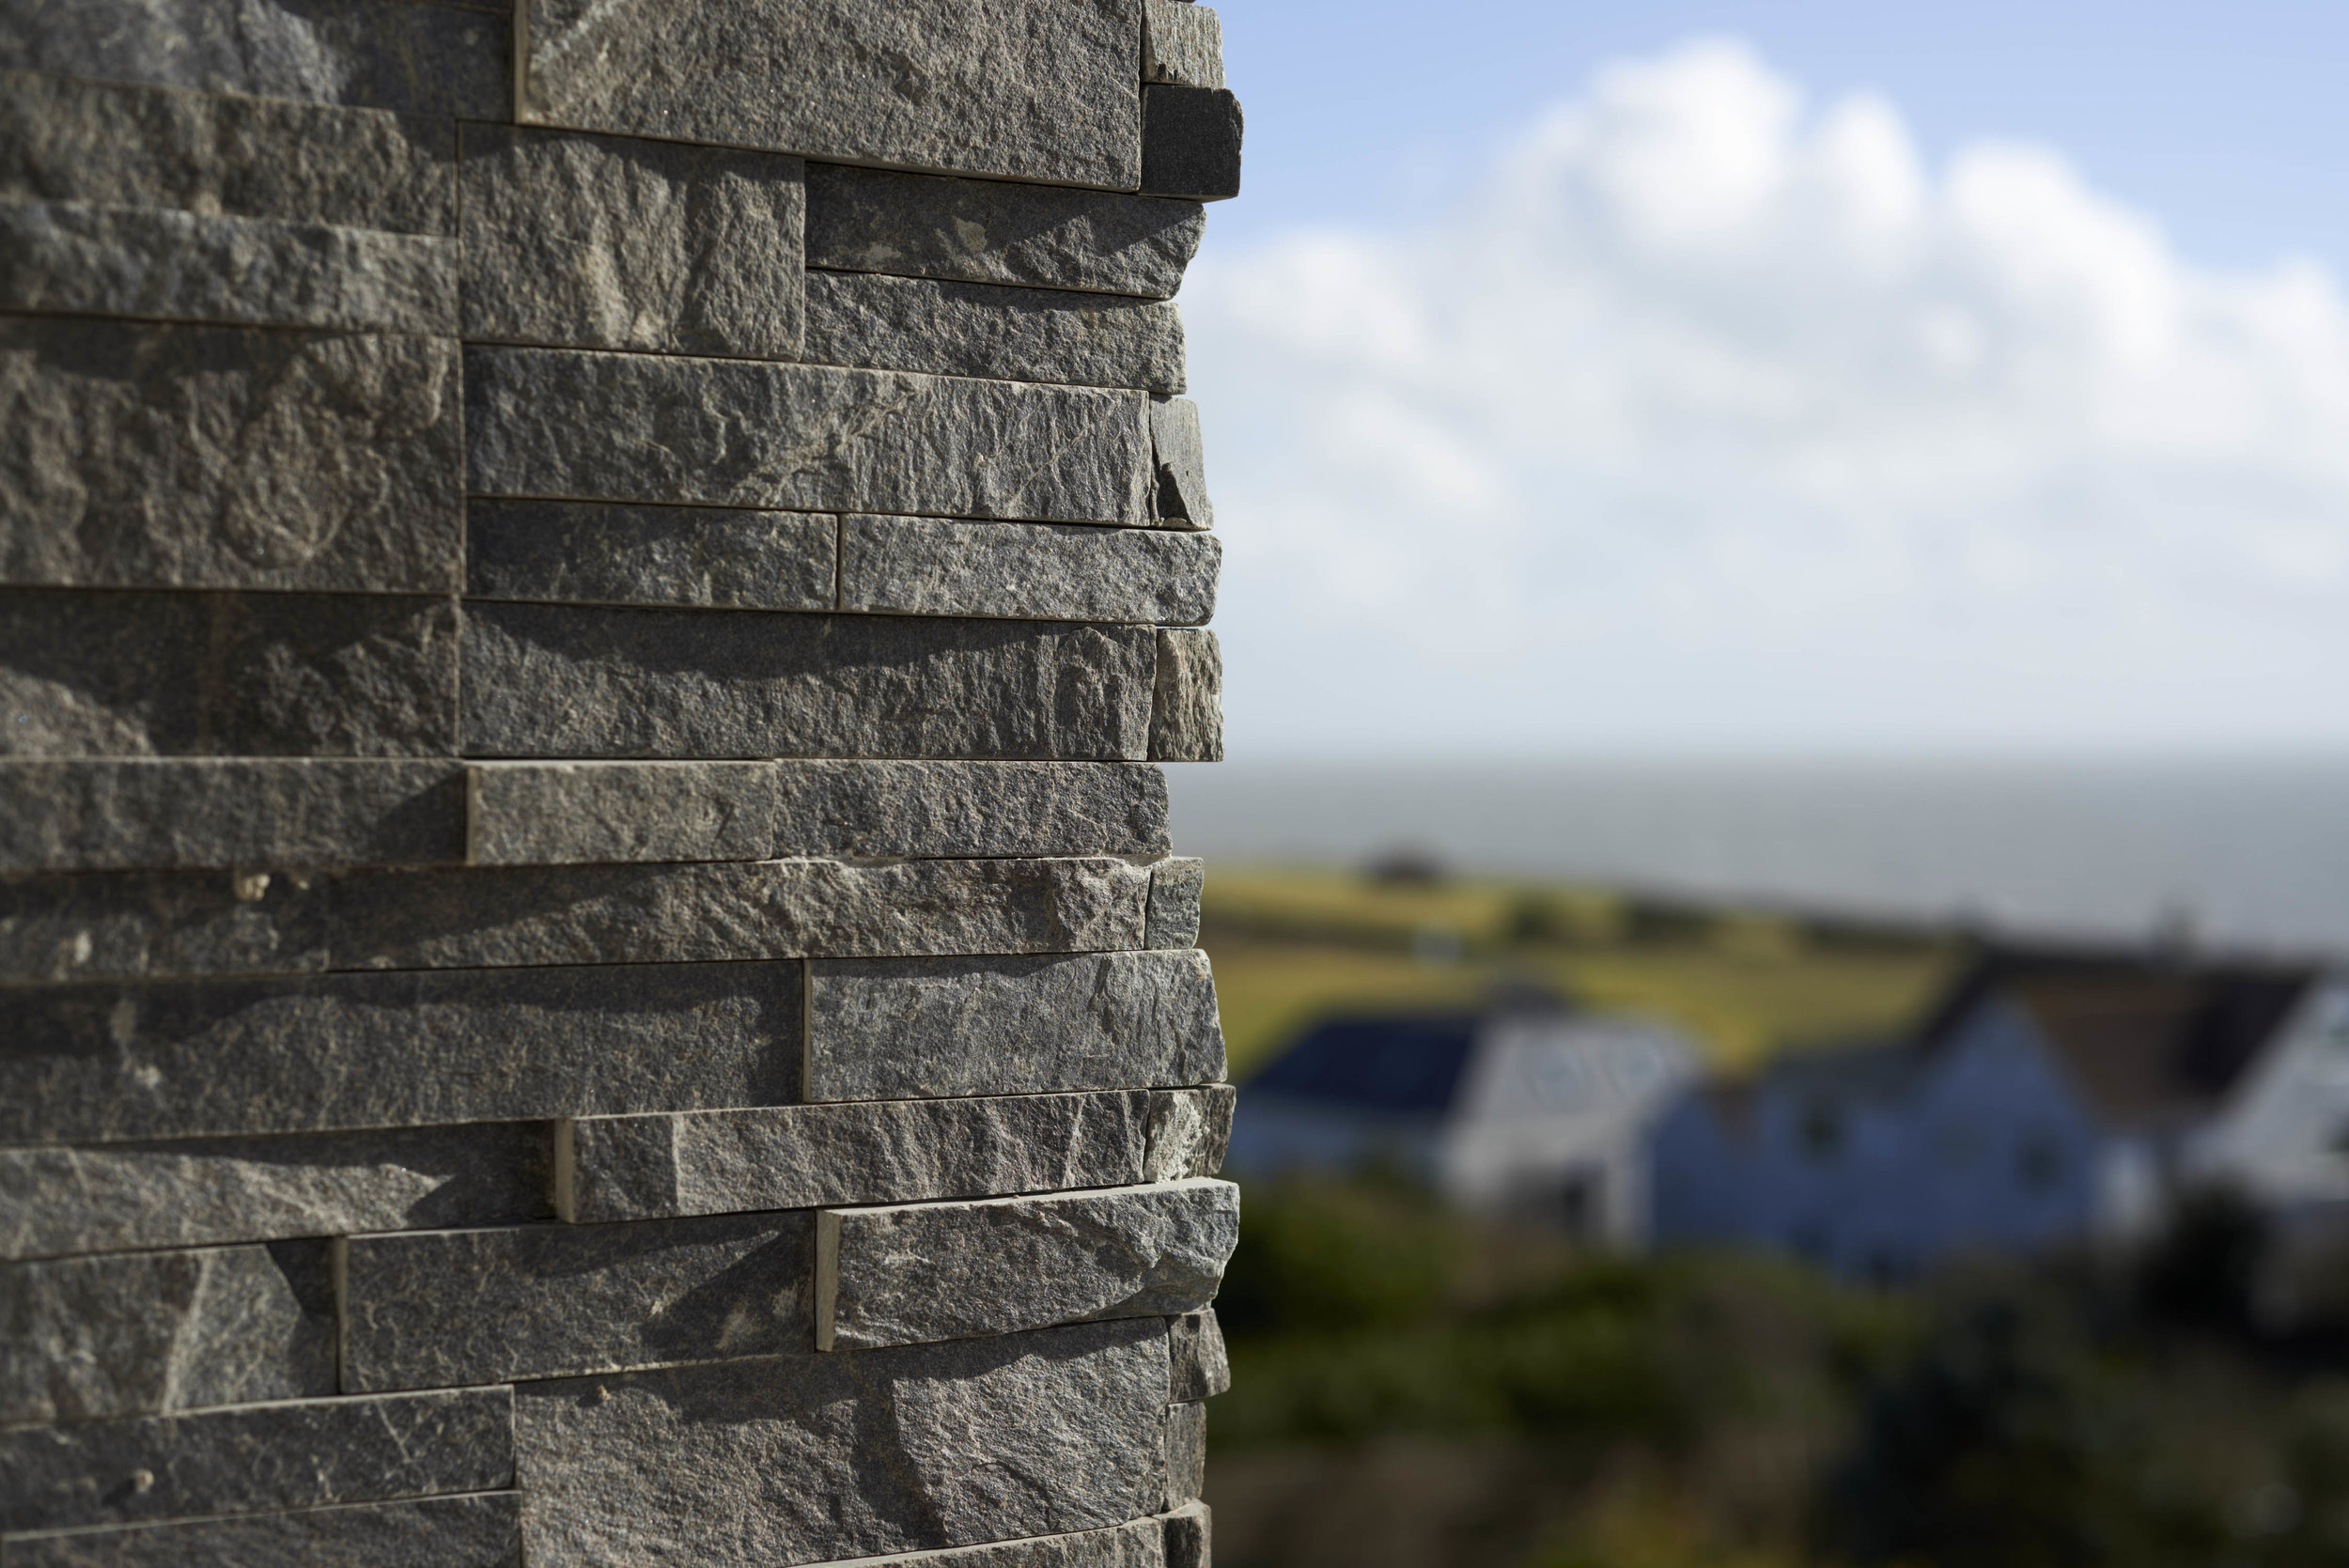 stone wall detail with view to sea beyond